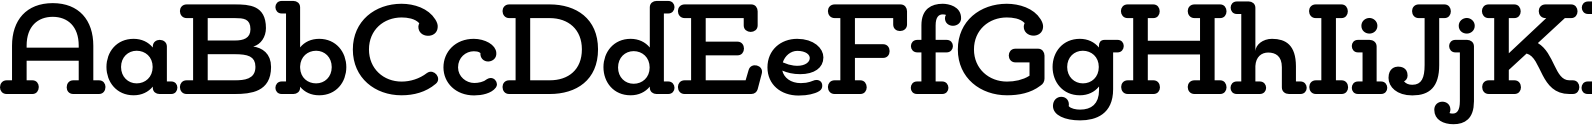 Chennai Slab Medium Font